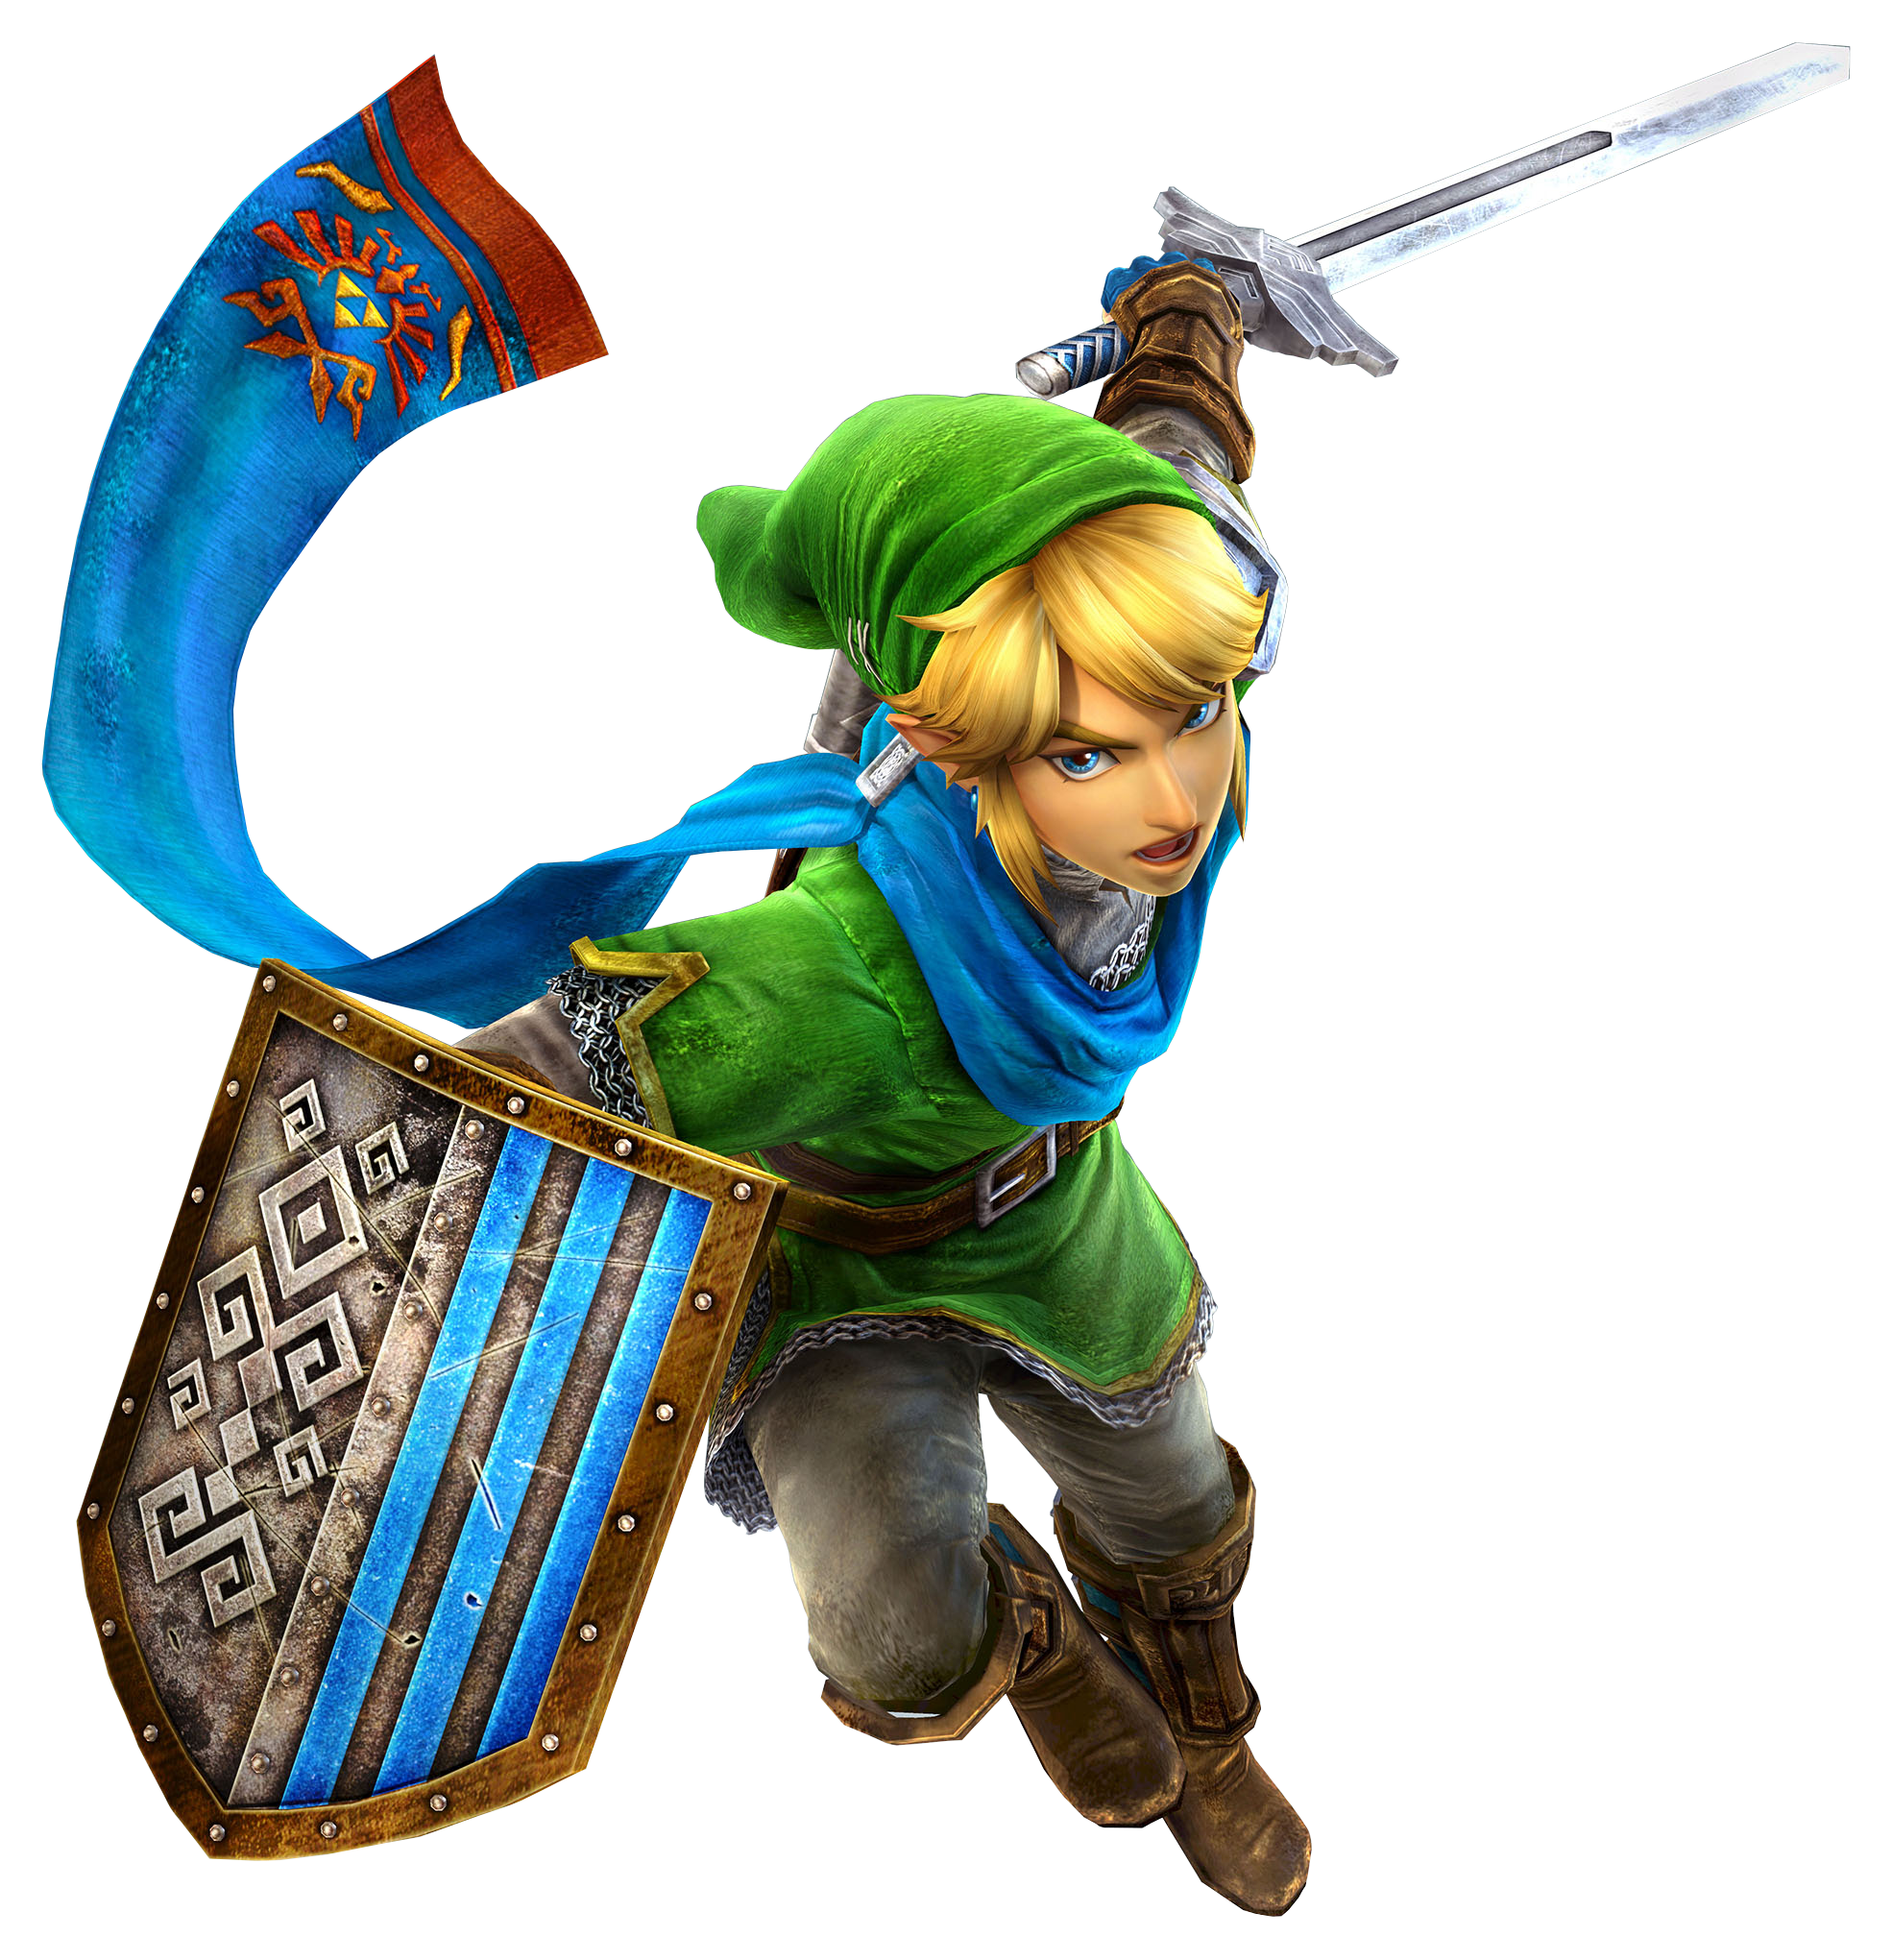 Link_Sword_(Hyrule_Warriors)